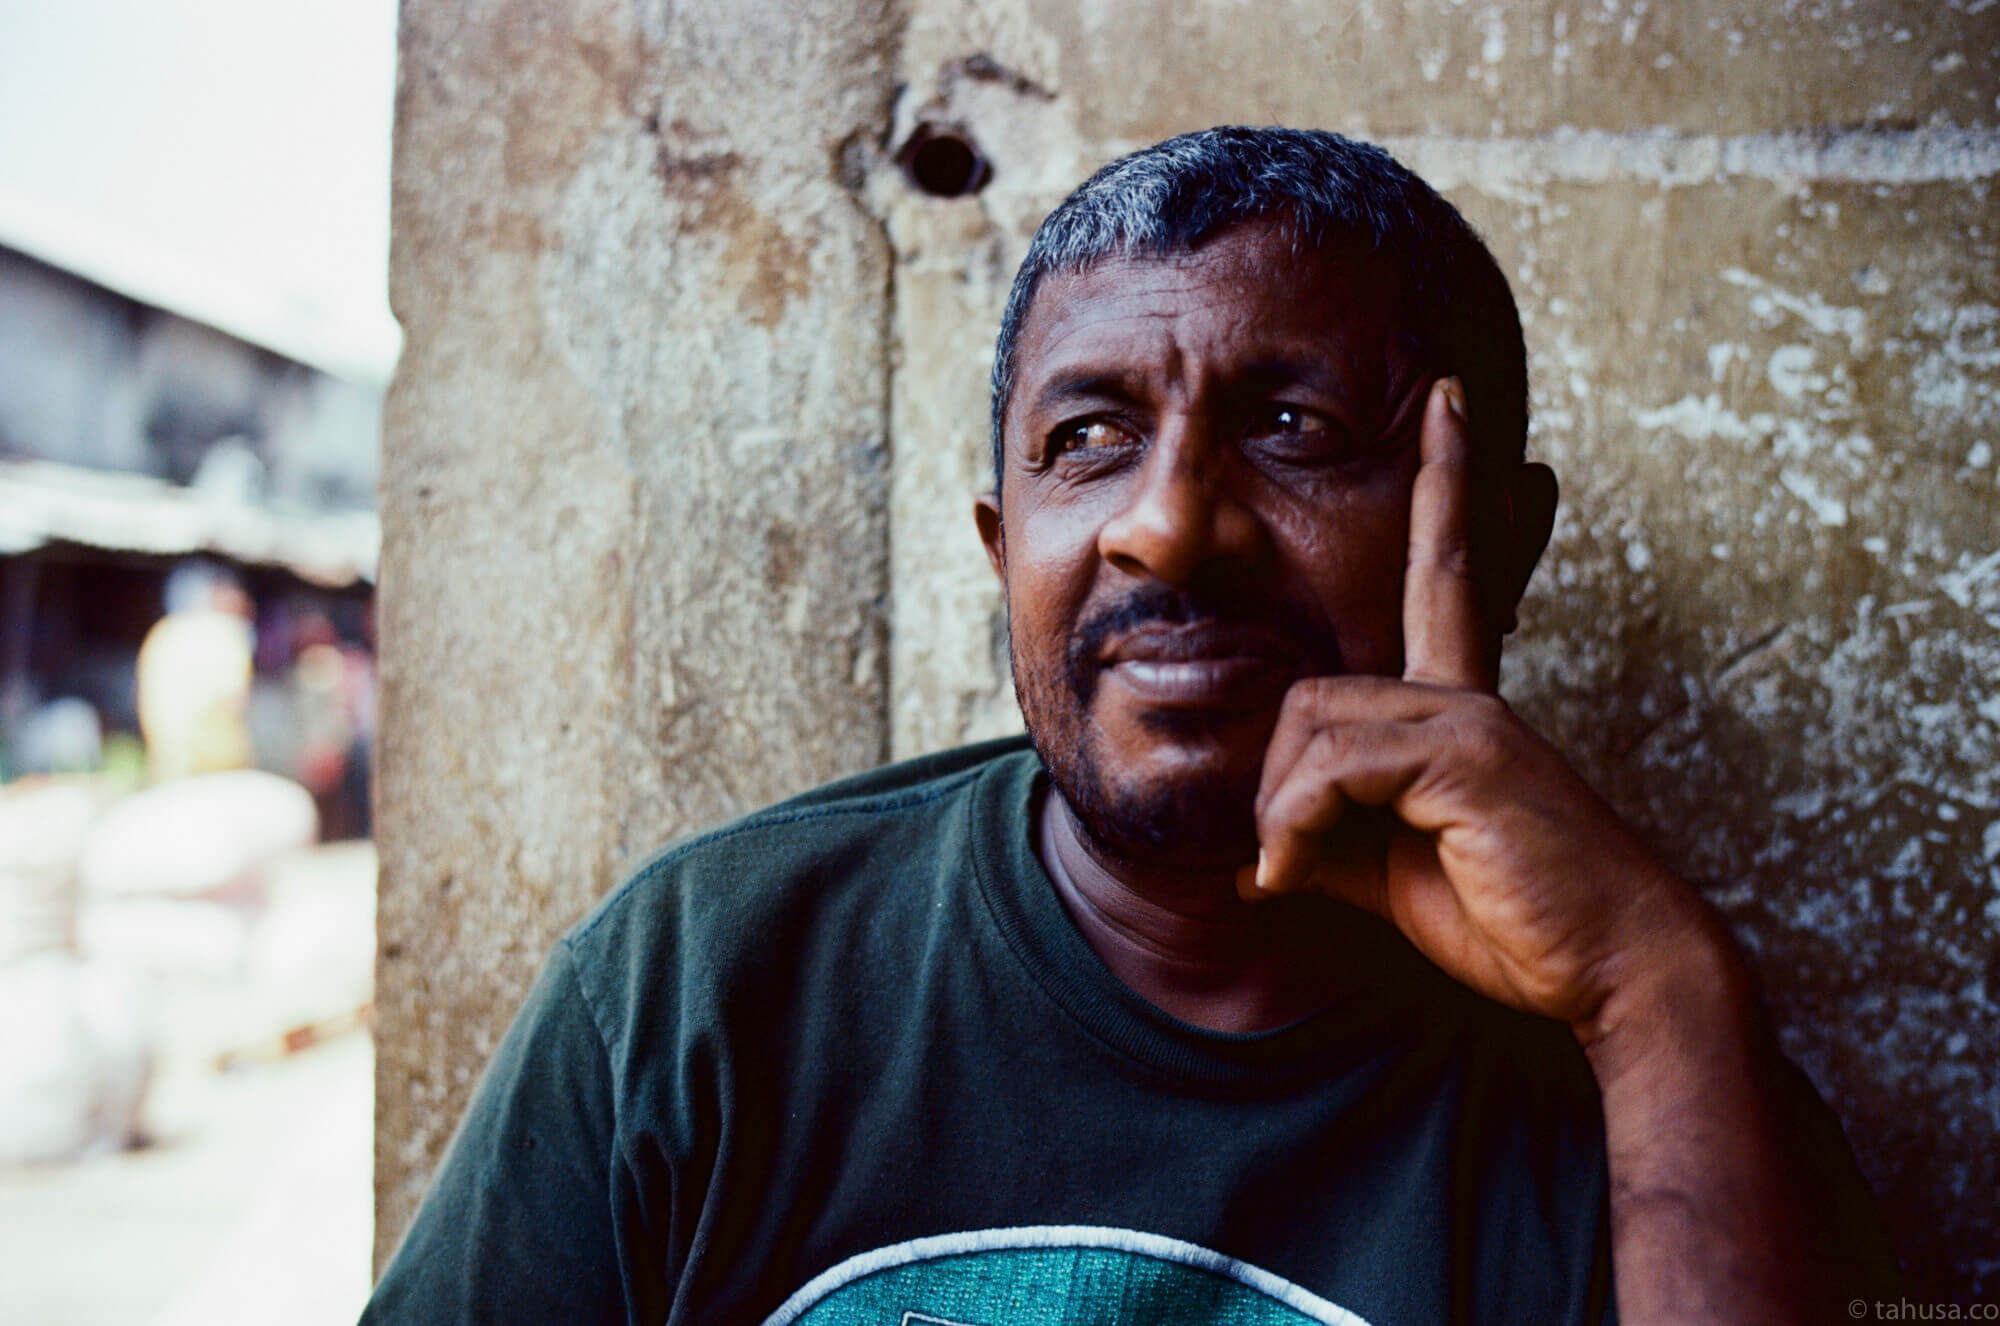 smiling-man-letting-me-to-take-portrait-for-him-in-pettah-market-colombo-sri-lanka-travel-photography-using-ektar-100-kodak-and-summilux-35mm-f1.4-asph-fle-leica-film